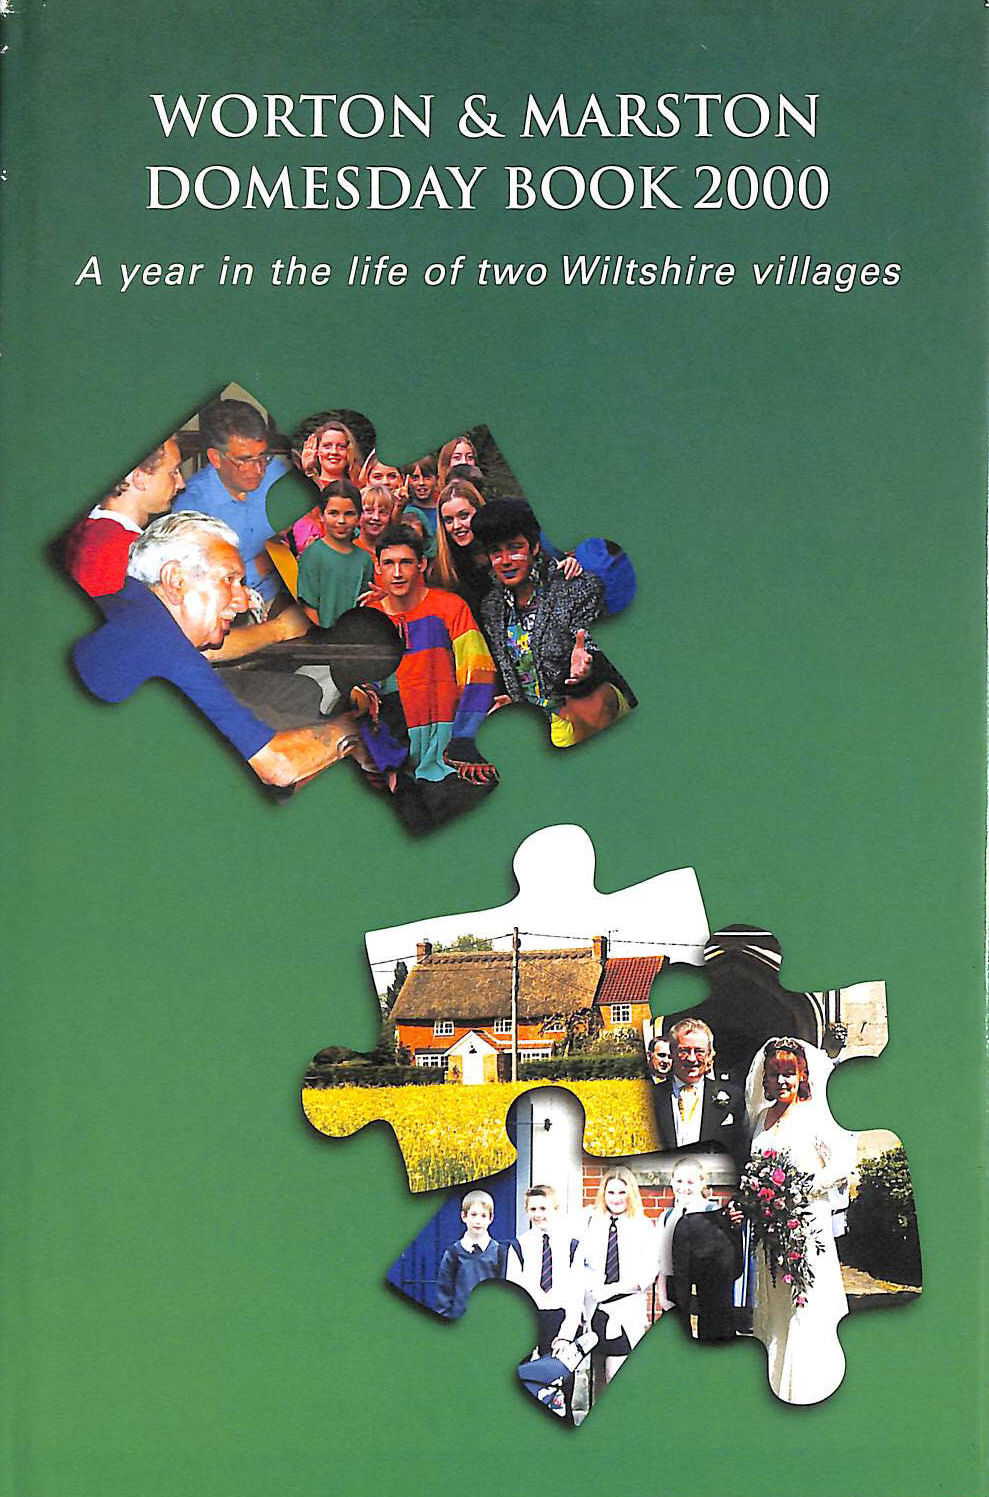 Image for Worton and Marston Domesday Book 2000: A Year in the Life of Two Wiltshire Villages